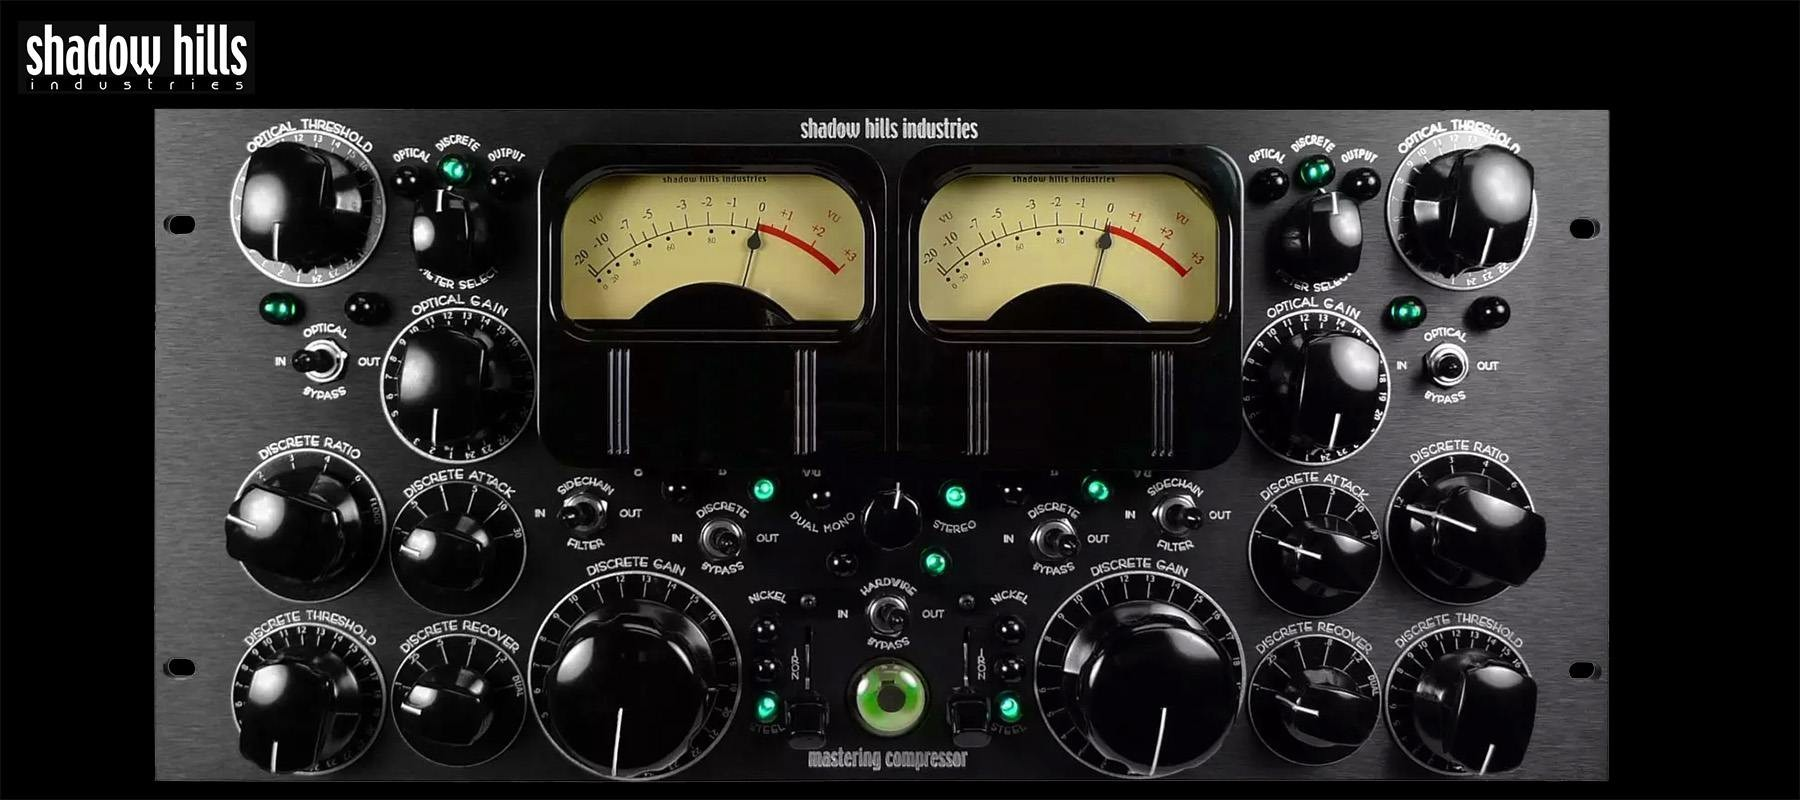 Shadow Hills industries Mastering Compressor